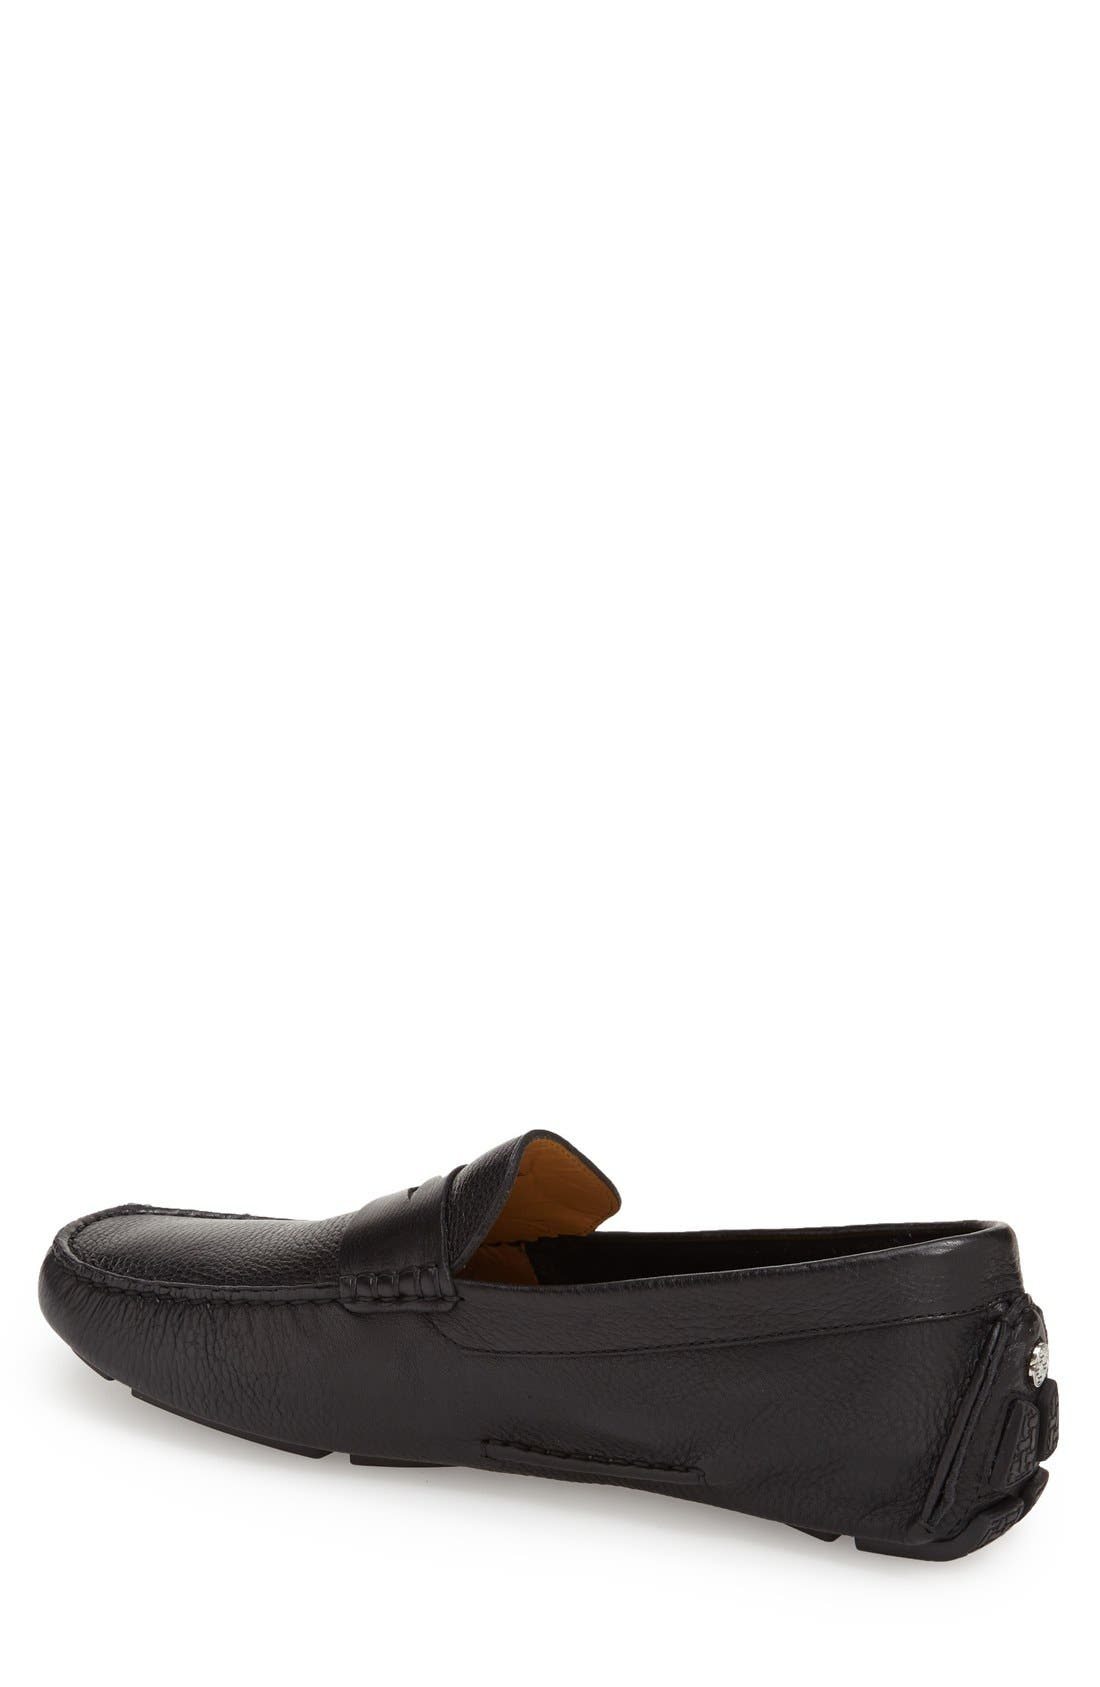 COLE HAAN, 'Howland' Penny Loafer, Alternate thumbnail 11, color, BLACK TUMBLED